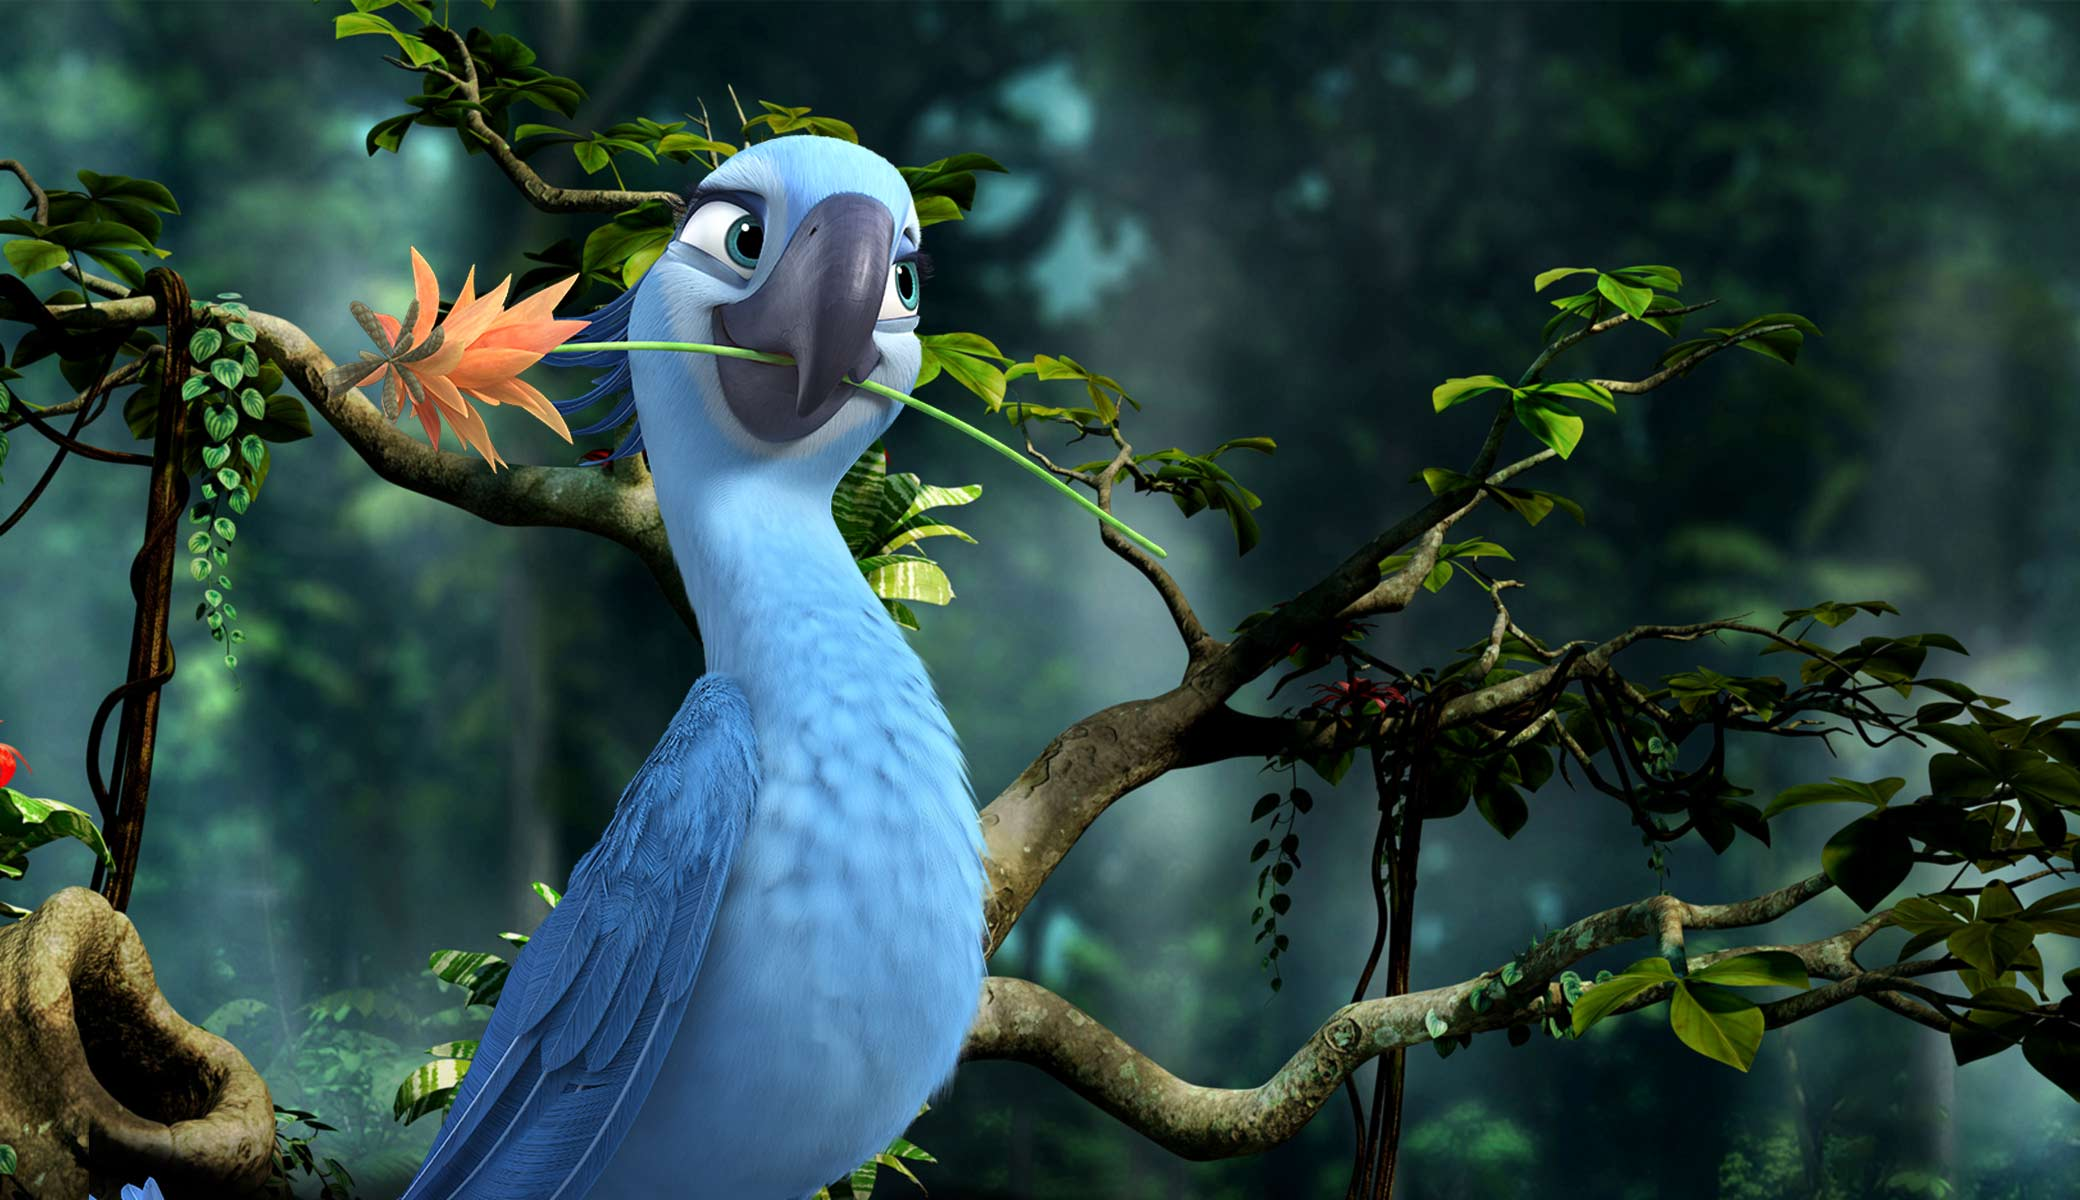 jewel from rio 2 desktop wallpaper